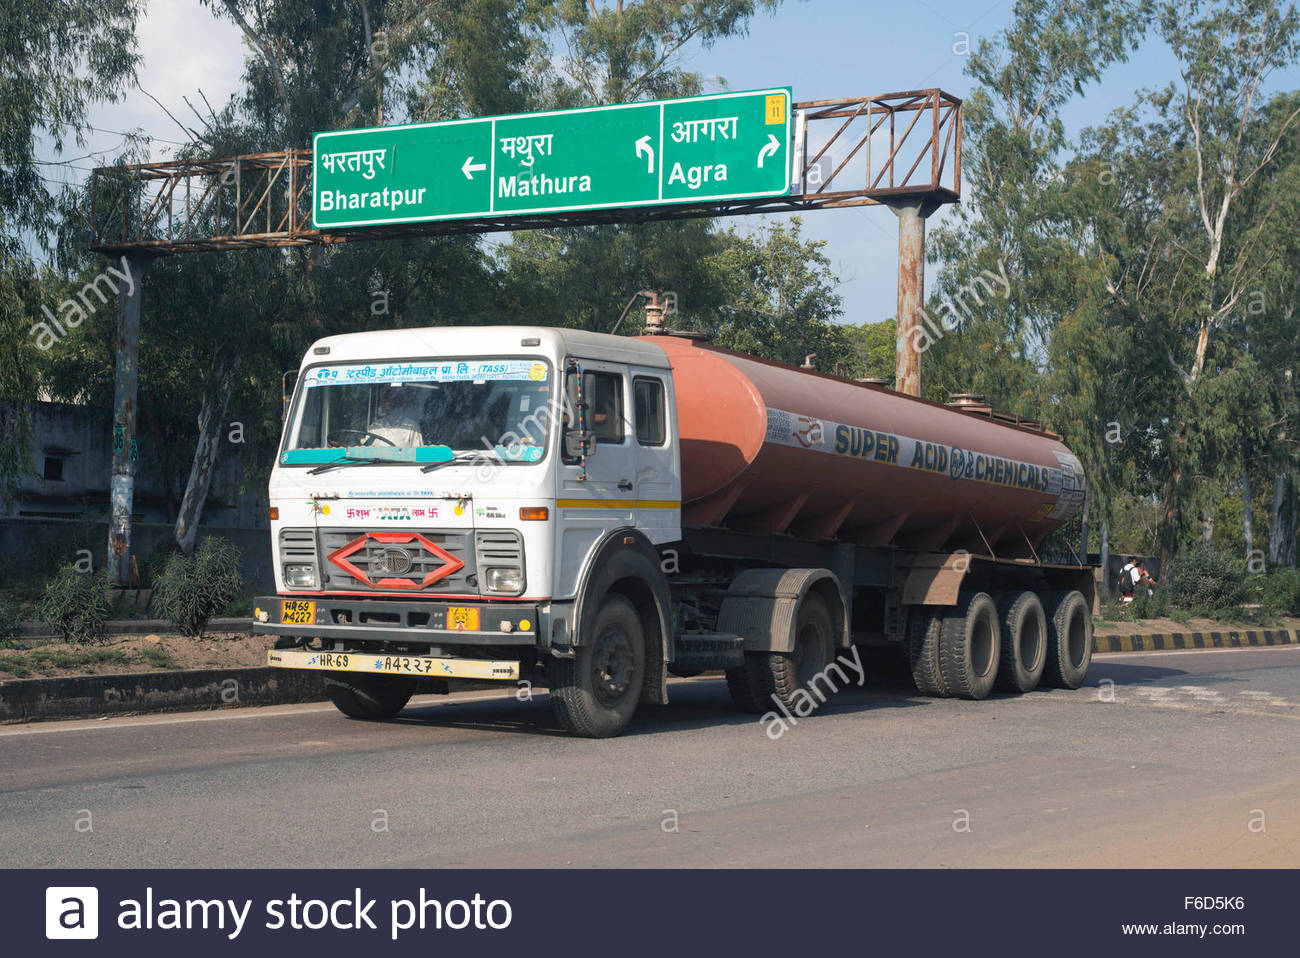 truck-tanker-on-national-highway-bharatpur-rajasthan-india-asia